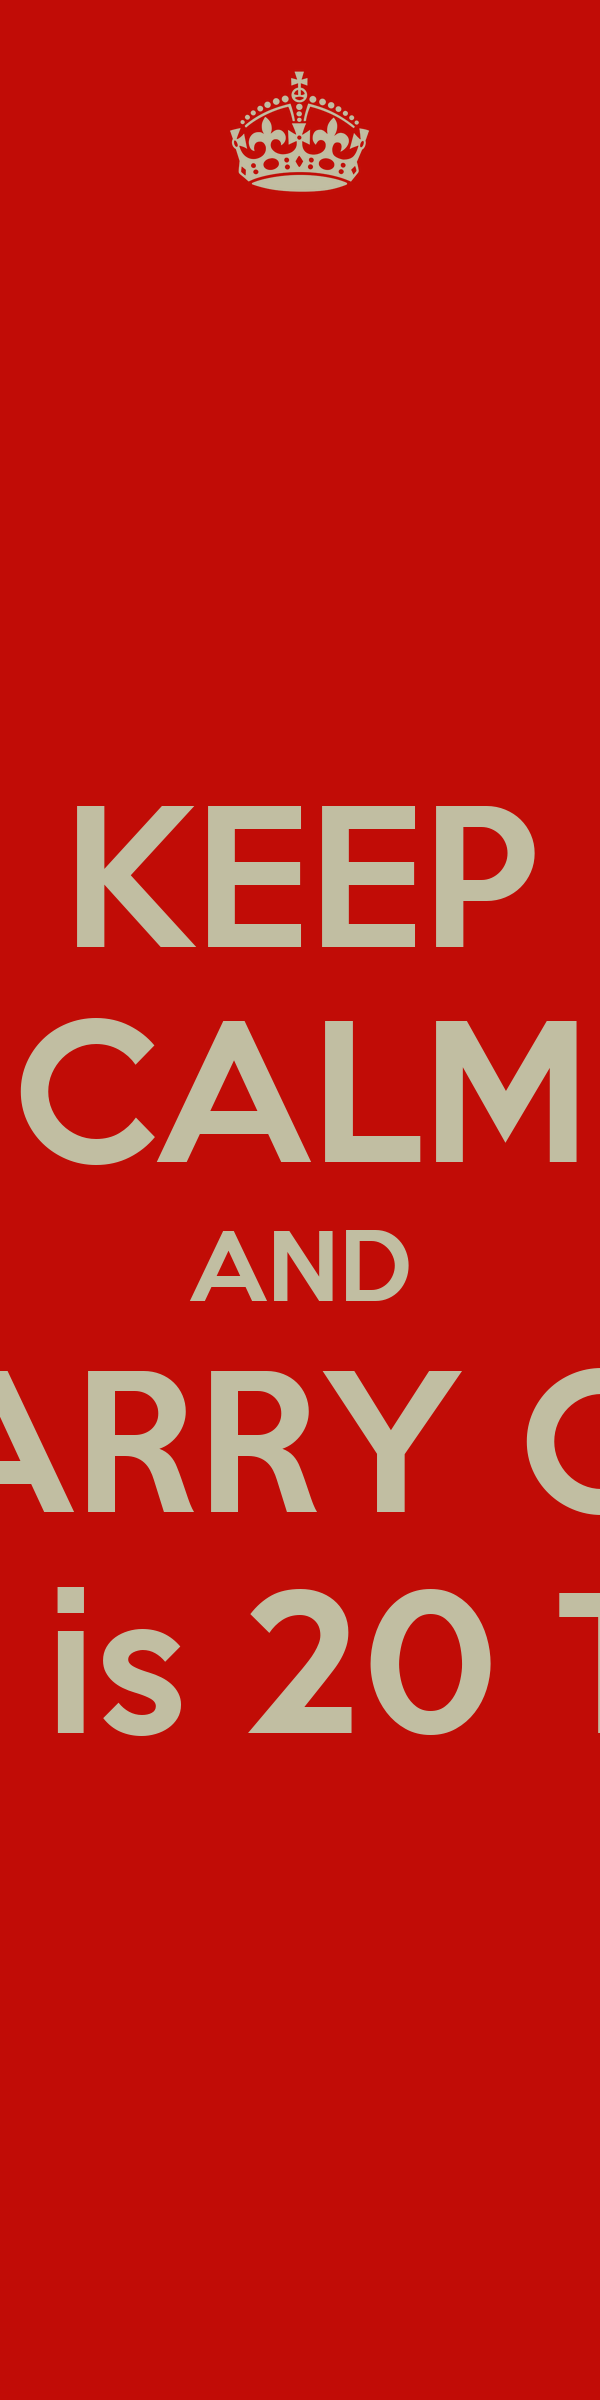 KEEP CALM AND CARRY ON Maddie is 20 TODAY